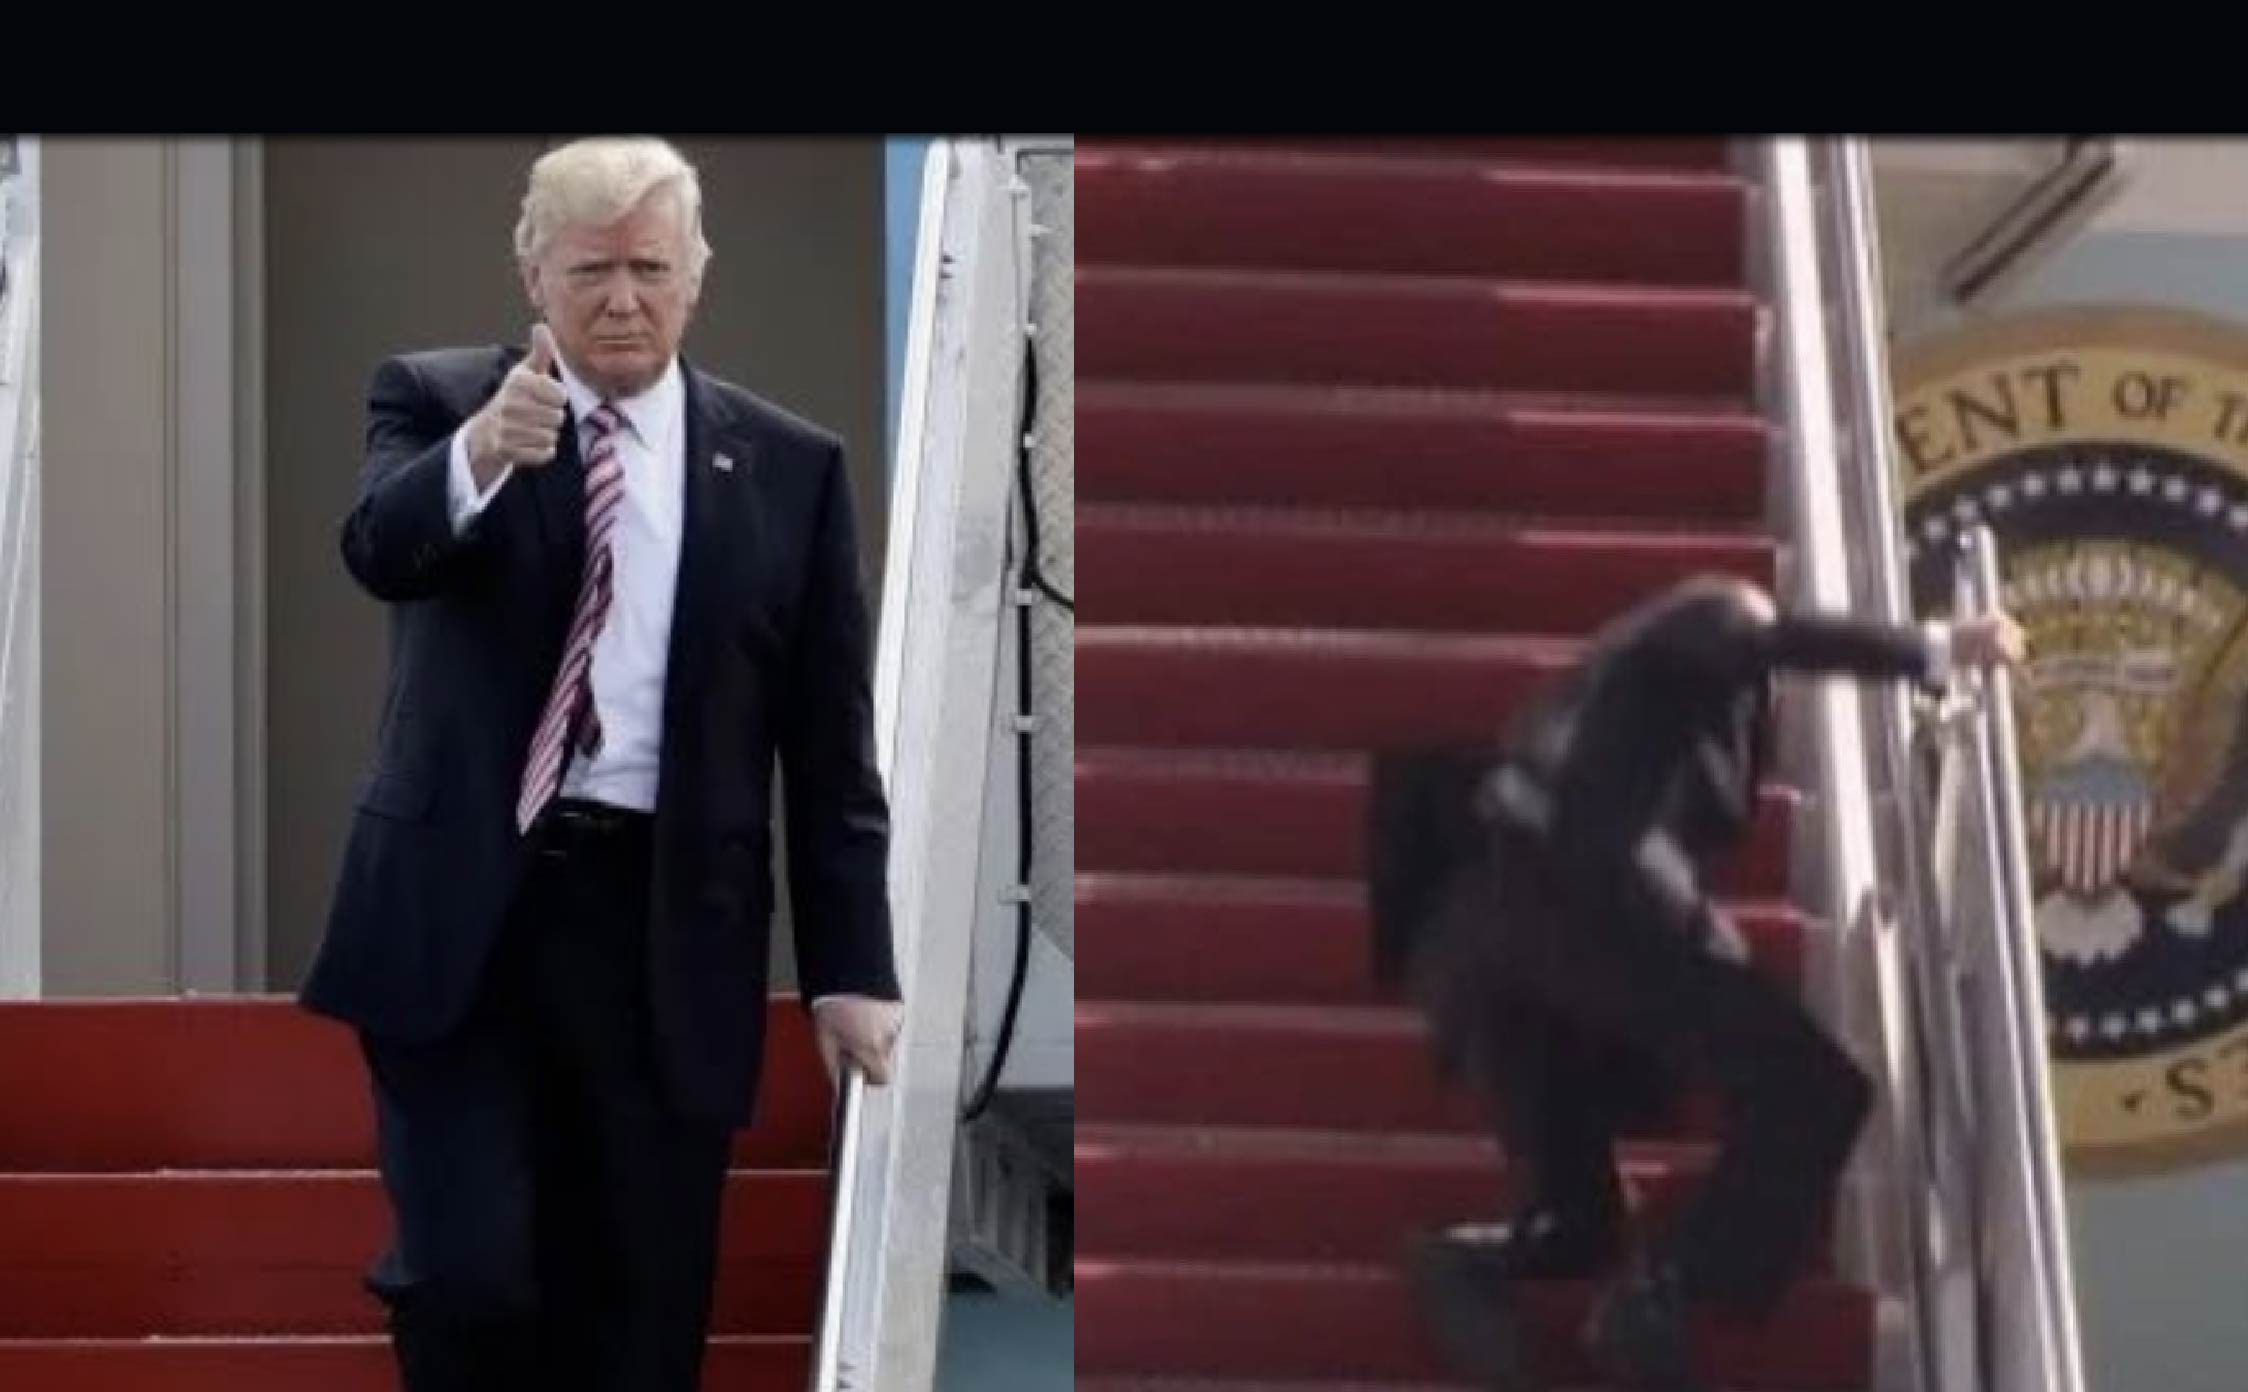 """Watch: Video of Biden Mocking How President Trump """"Stumbles On Stairs"""" Comes Back to Haunt Him"""